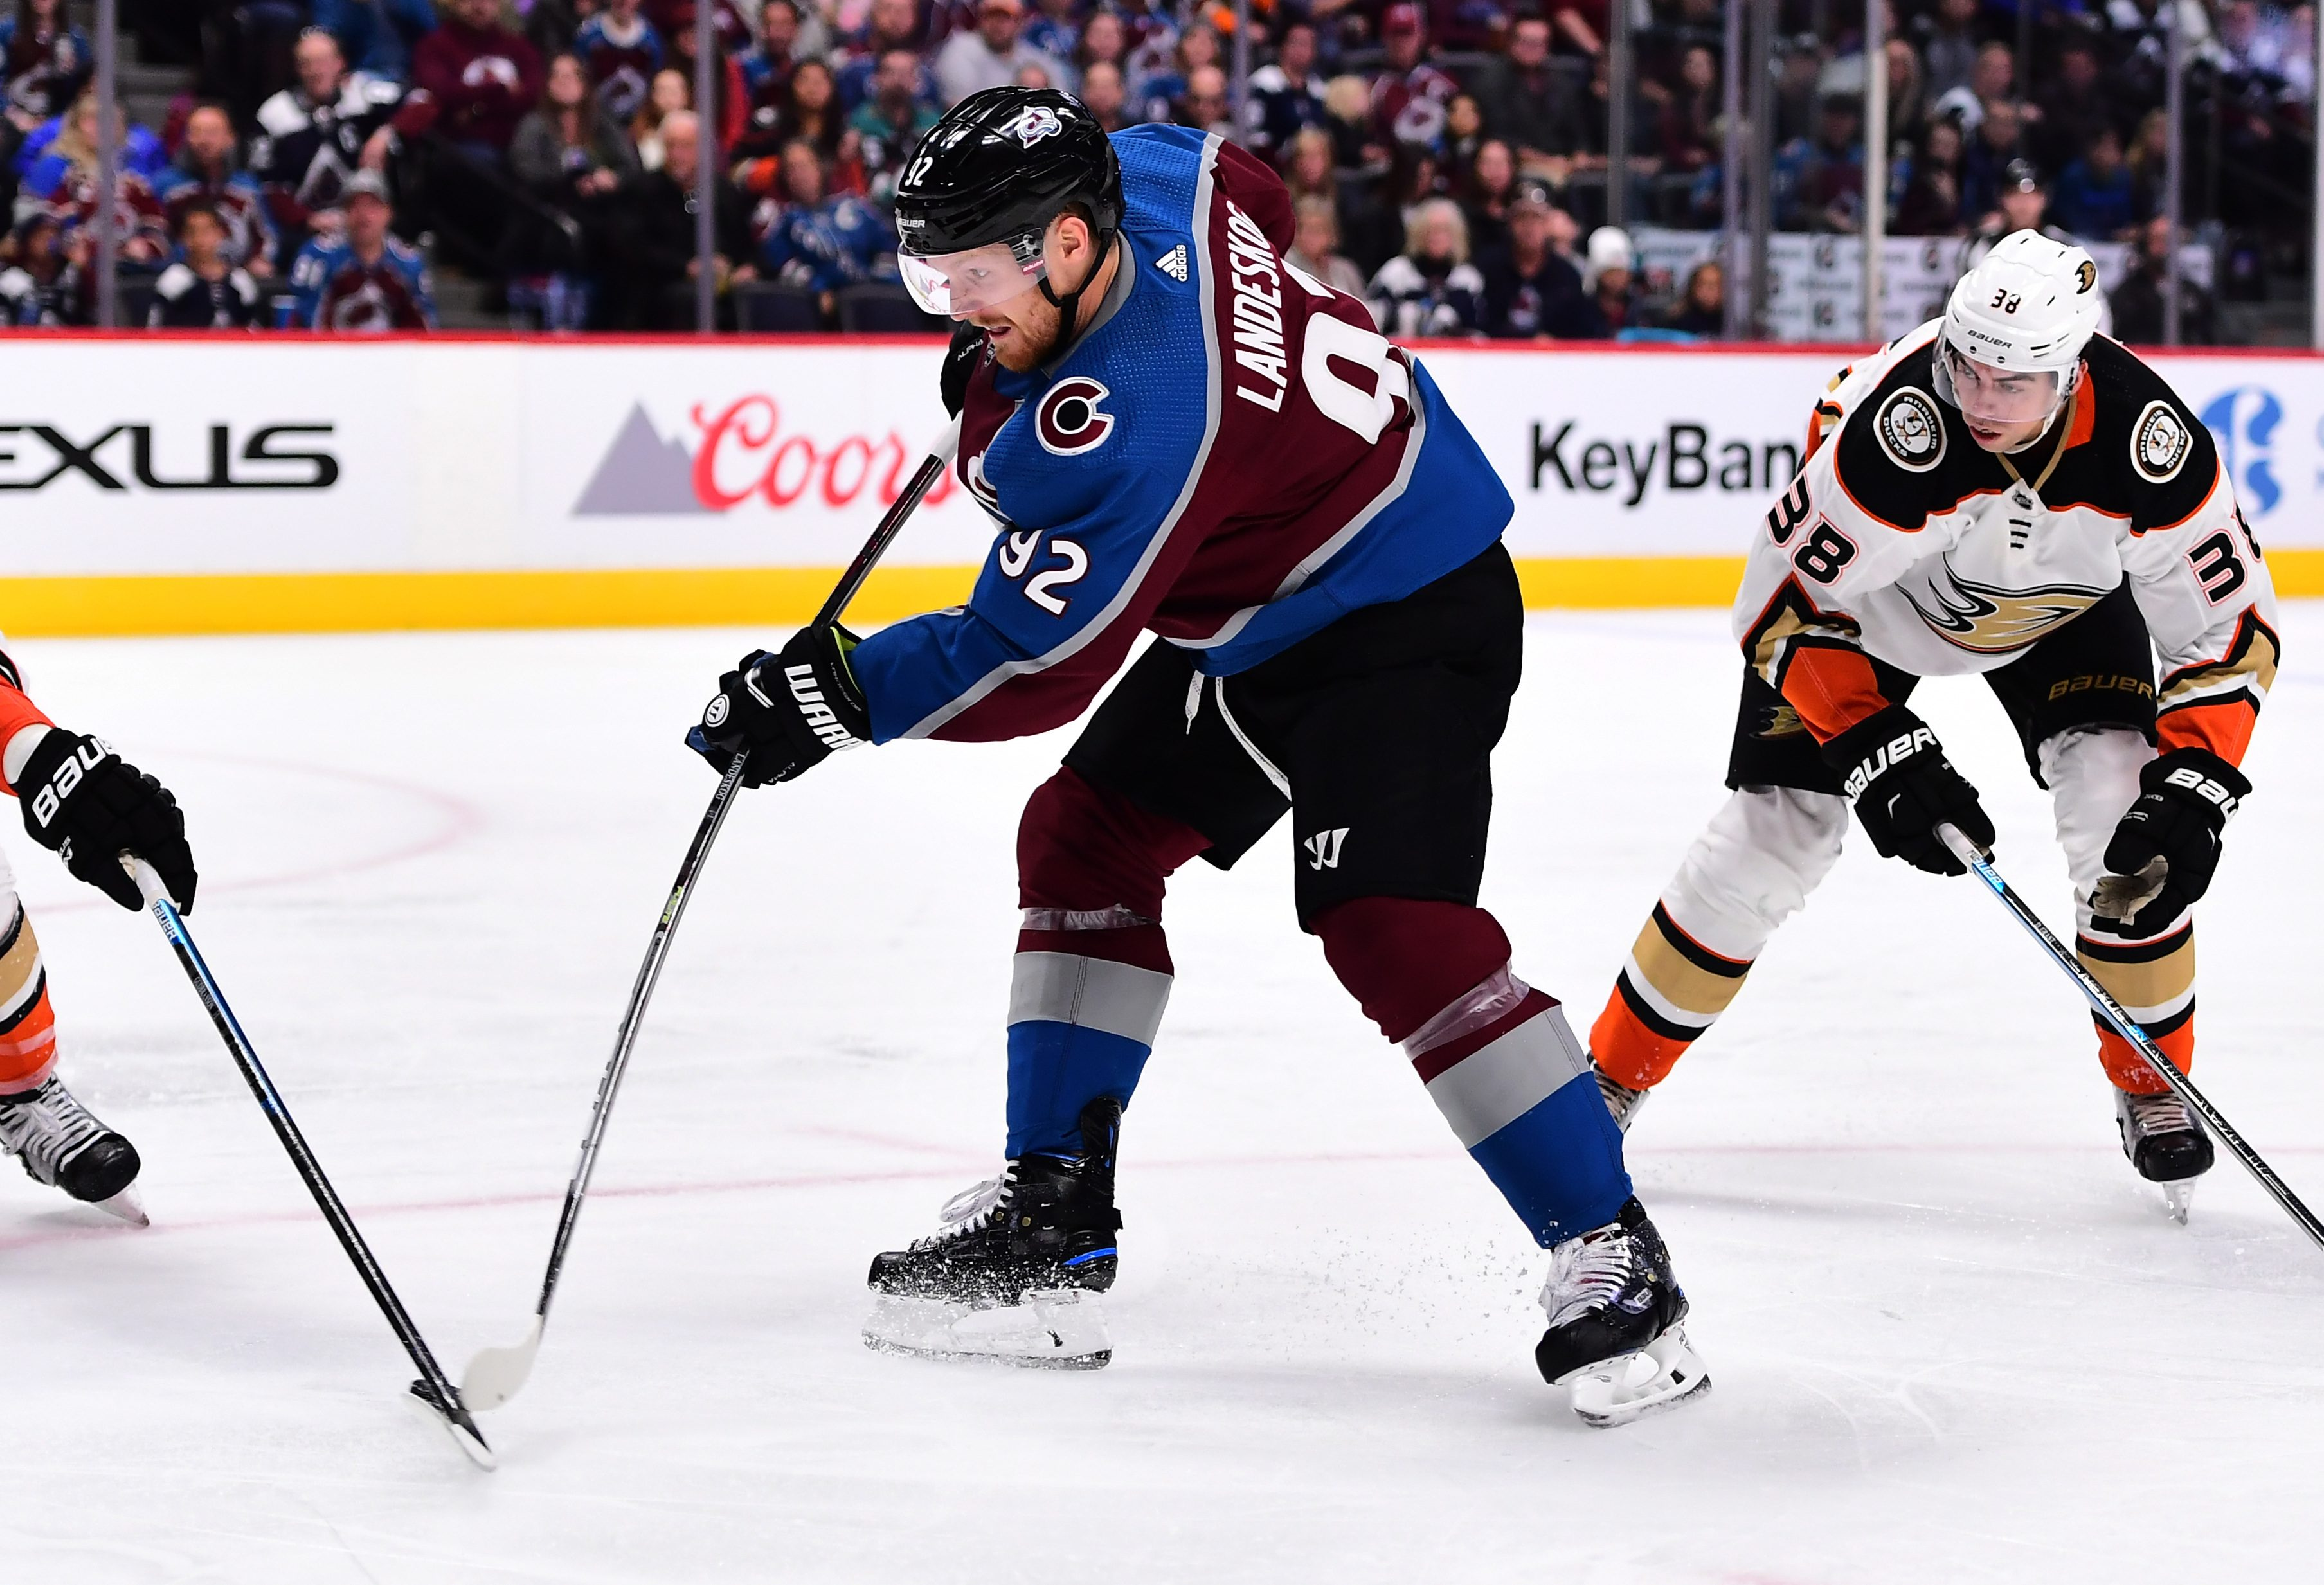 Mikko Rantanen and Gabriel Landeskog Back in Practice for Colorado Avalanche